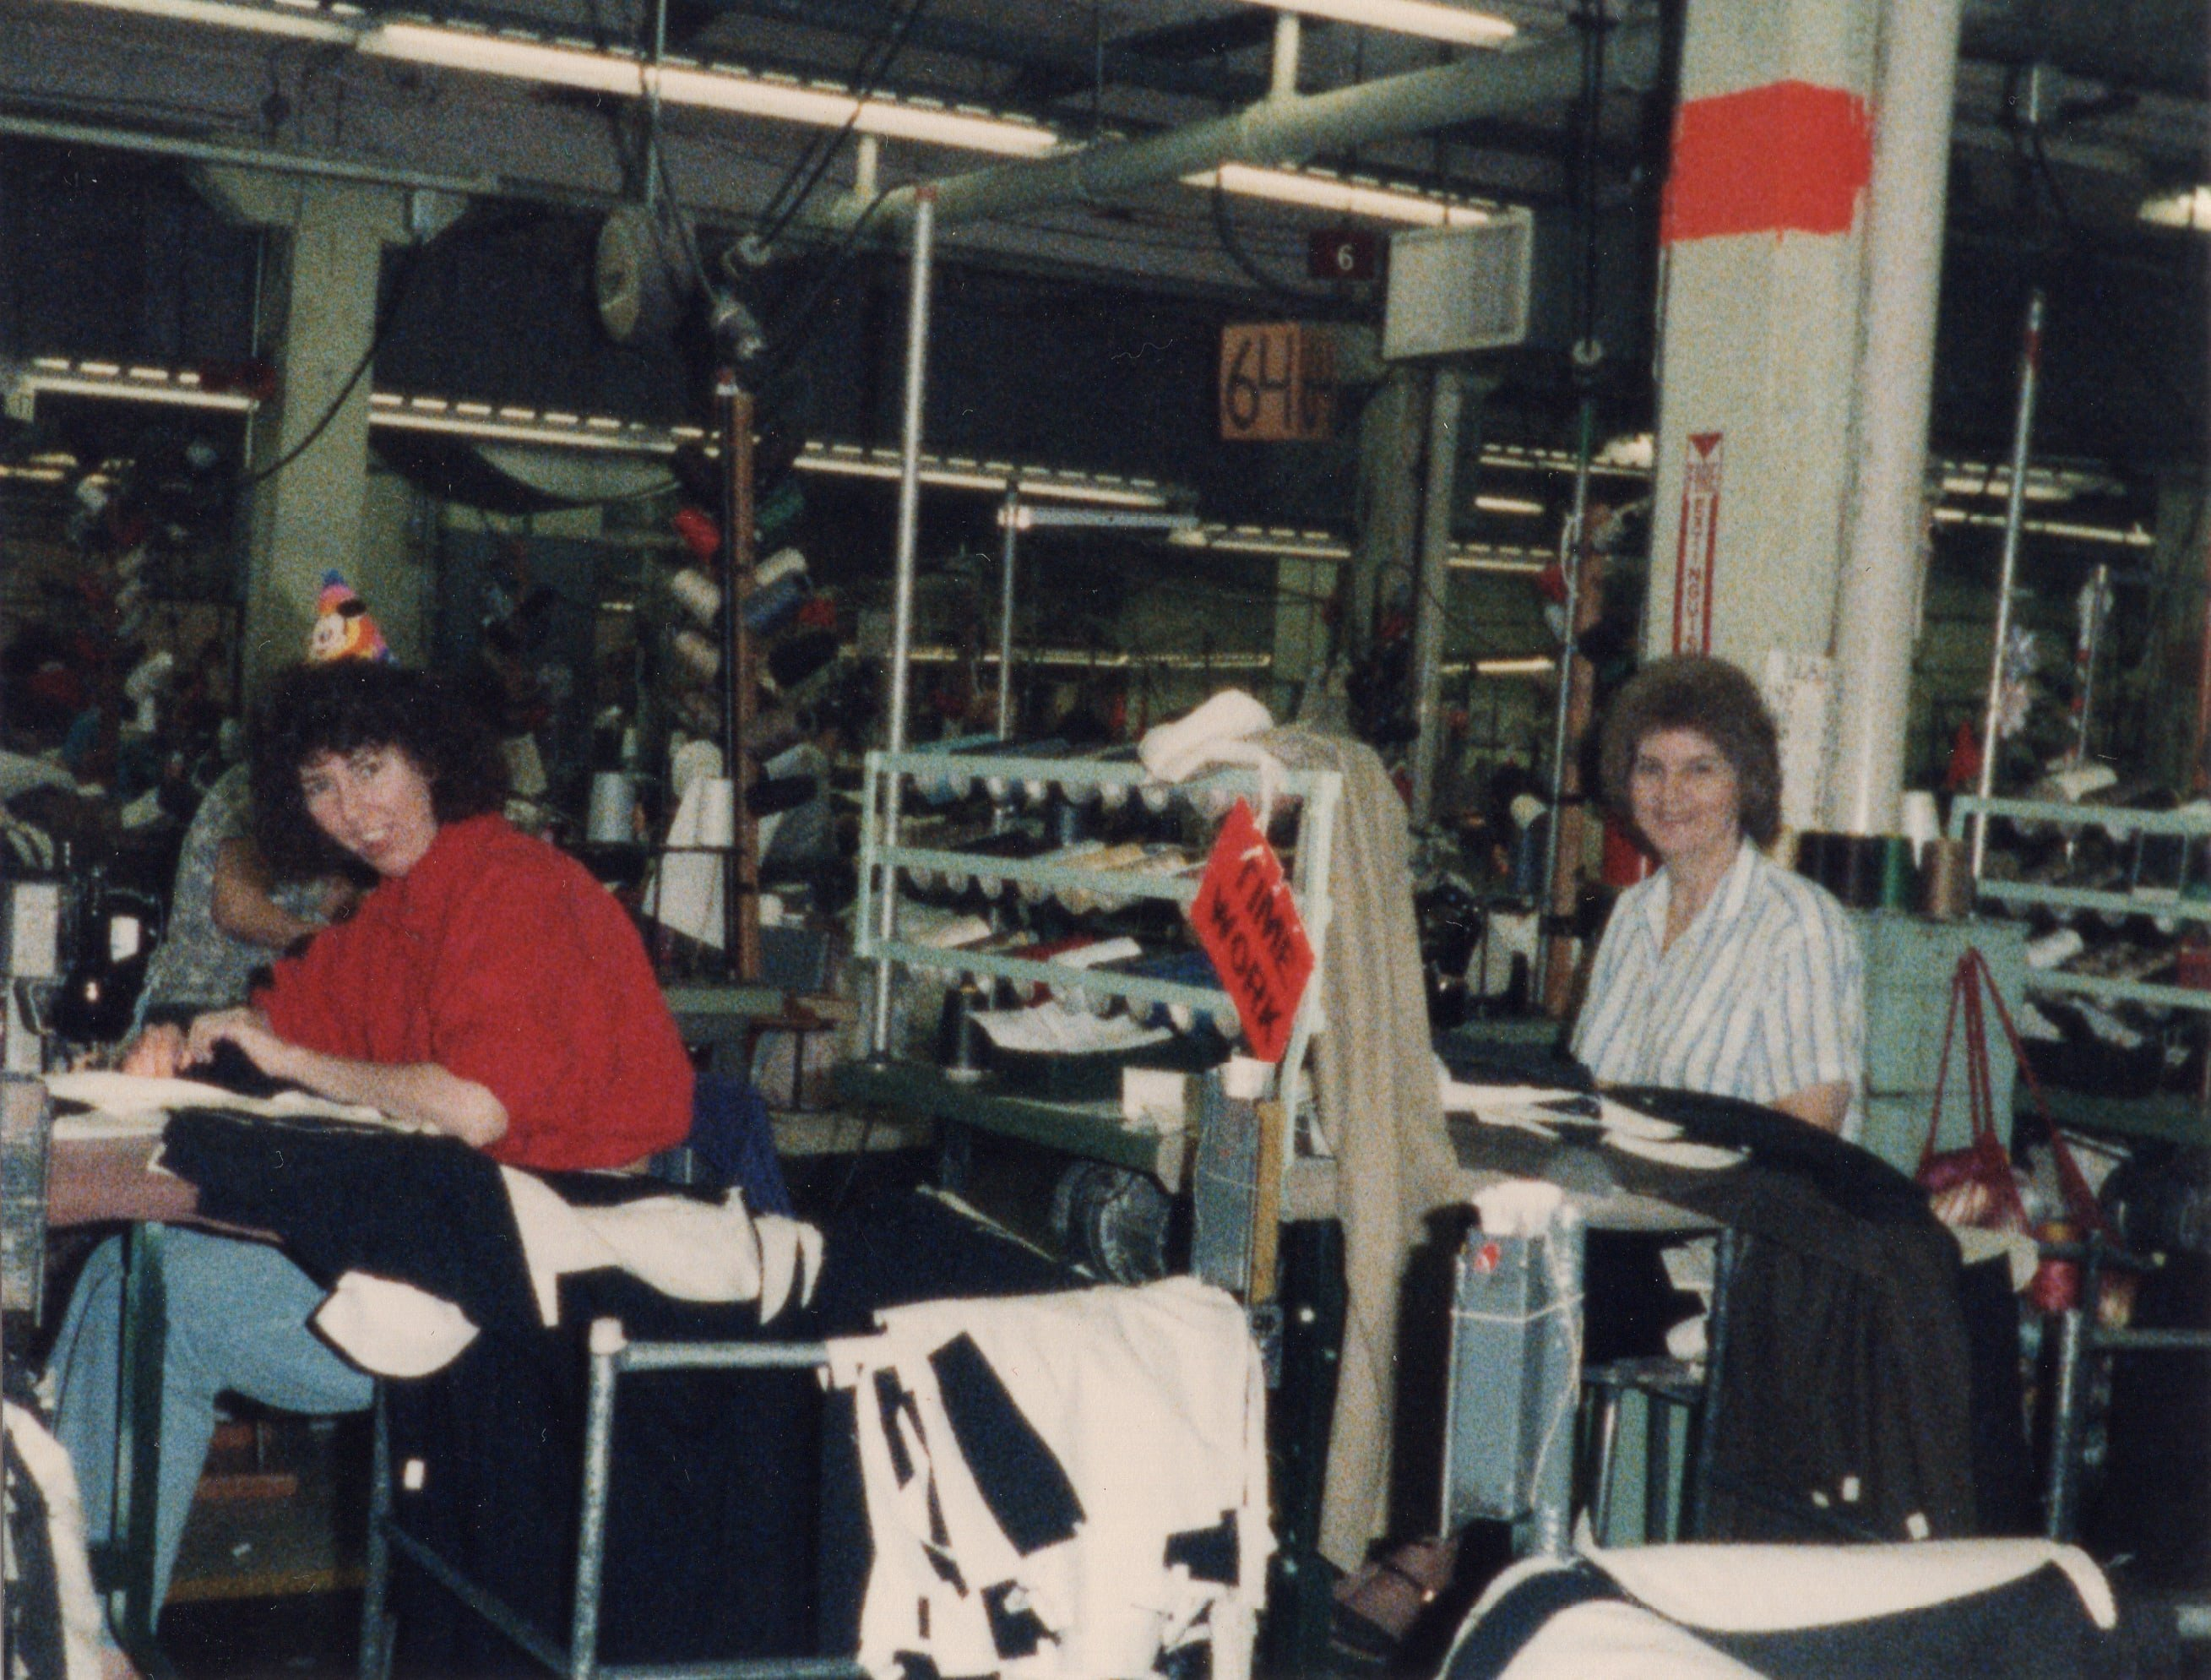 Corbin Ltd. Machine Operators Linda Collins and Becky Chaffin sewing front pockets on trousers, Huntington, WV